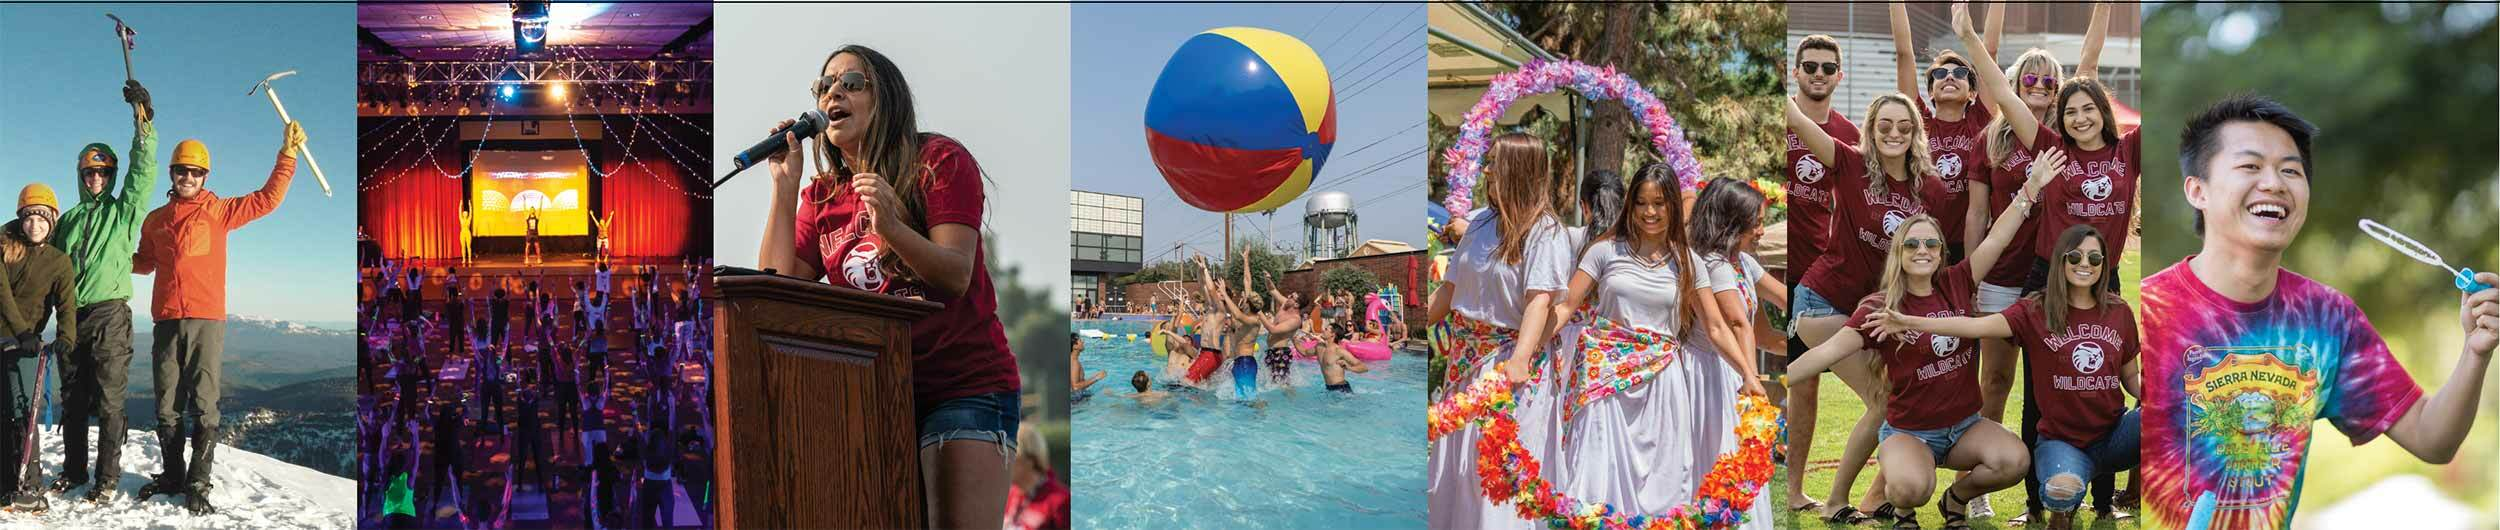 A collage of student experiences: mountain climbing, yoga class, at the pool, having fun